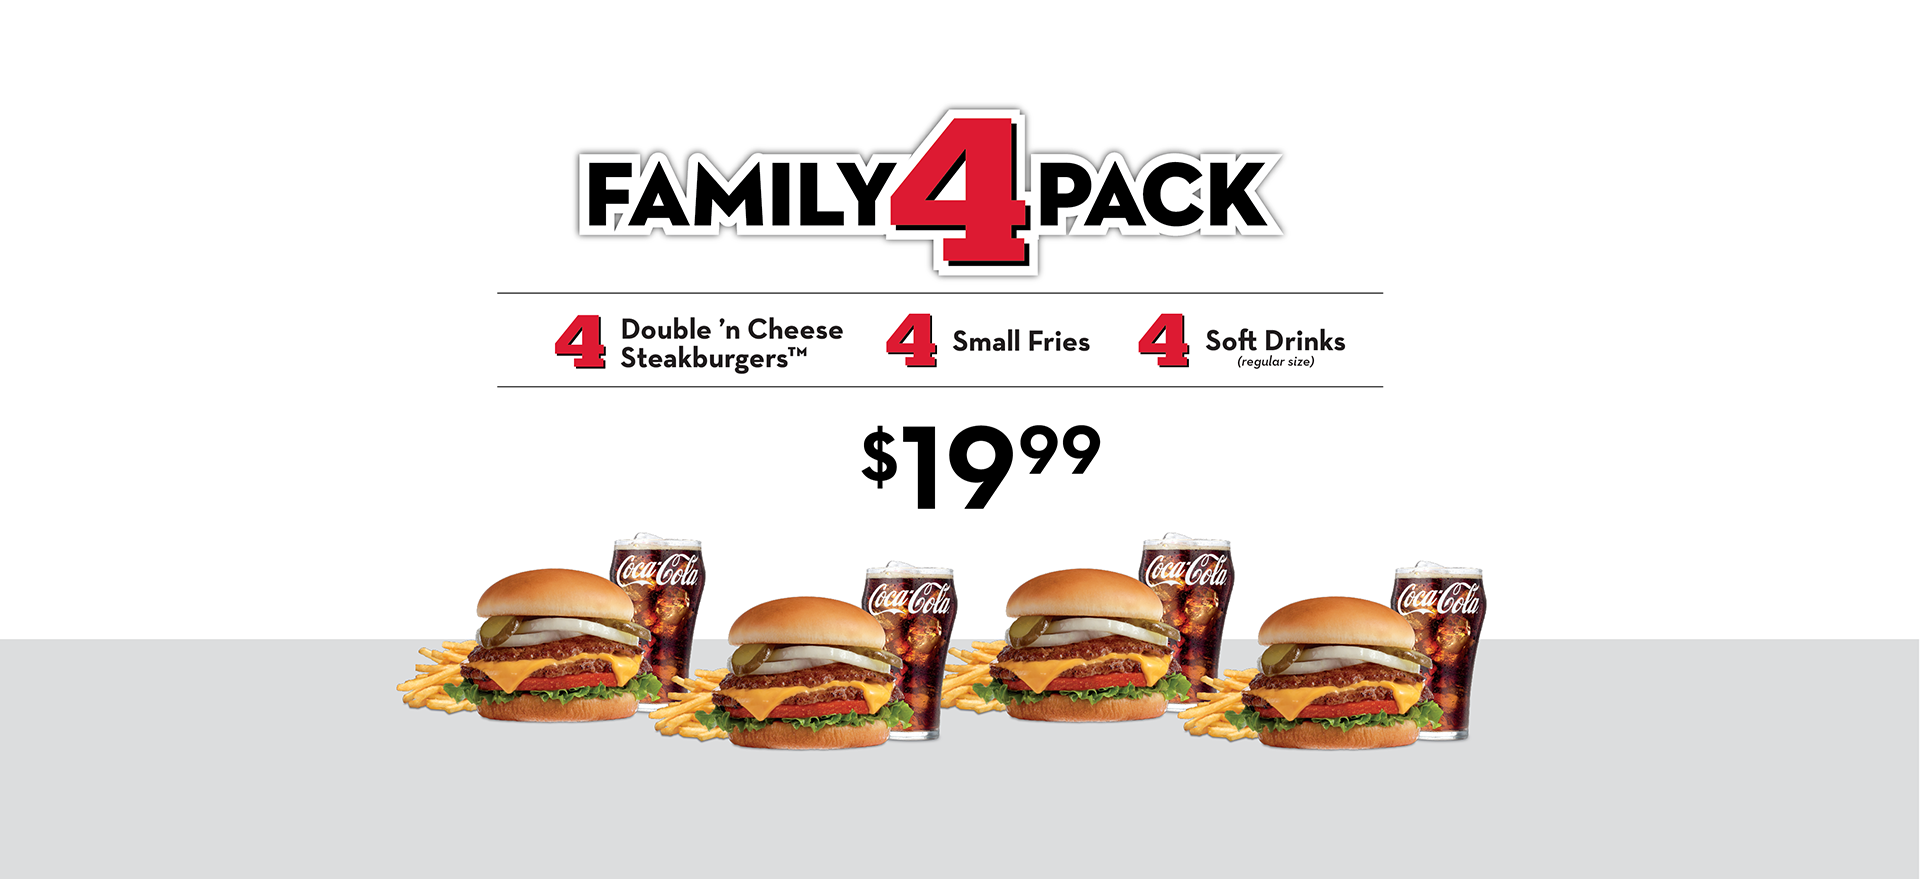 FAMILY 4 PACK MEAL DEAL